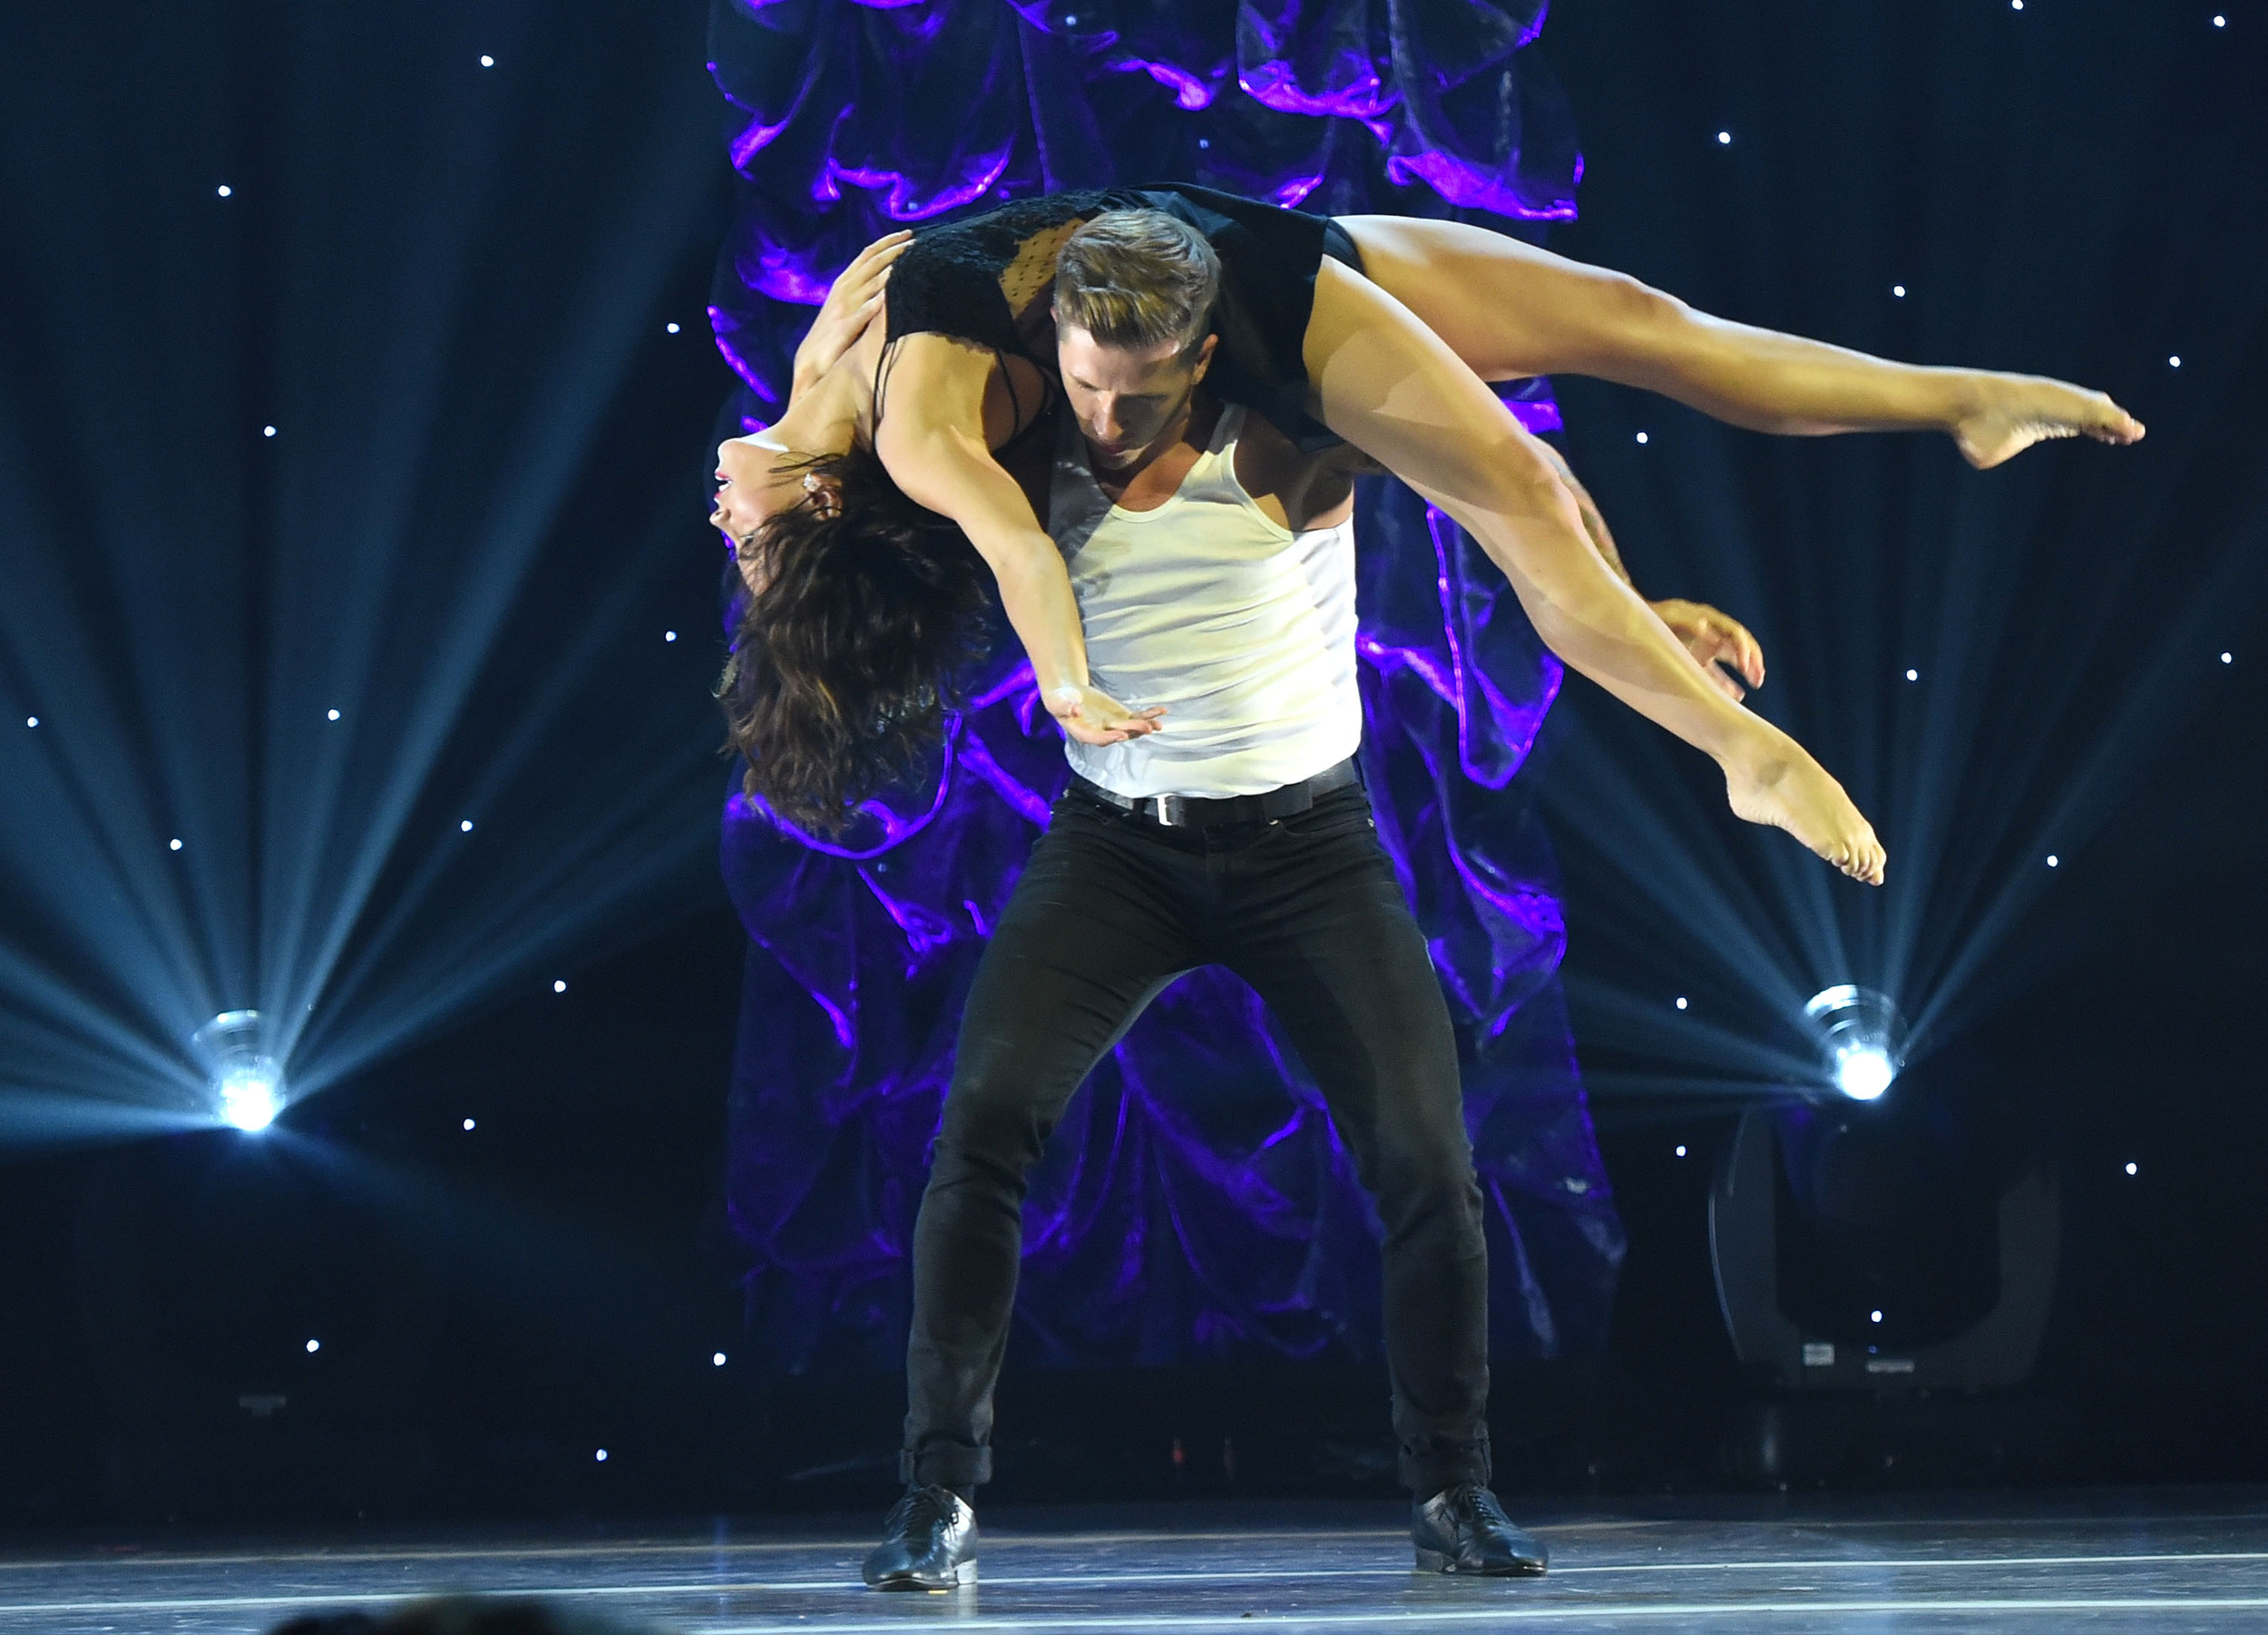 Actress/dancer Jenna Dewan Tatum and dancer/choreographer Travis Wall perform onstage at the 5th Annual Celebration of Dance Gala presented By The Dizzy Feet Foundation at Club Nokia.